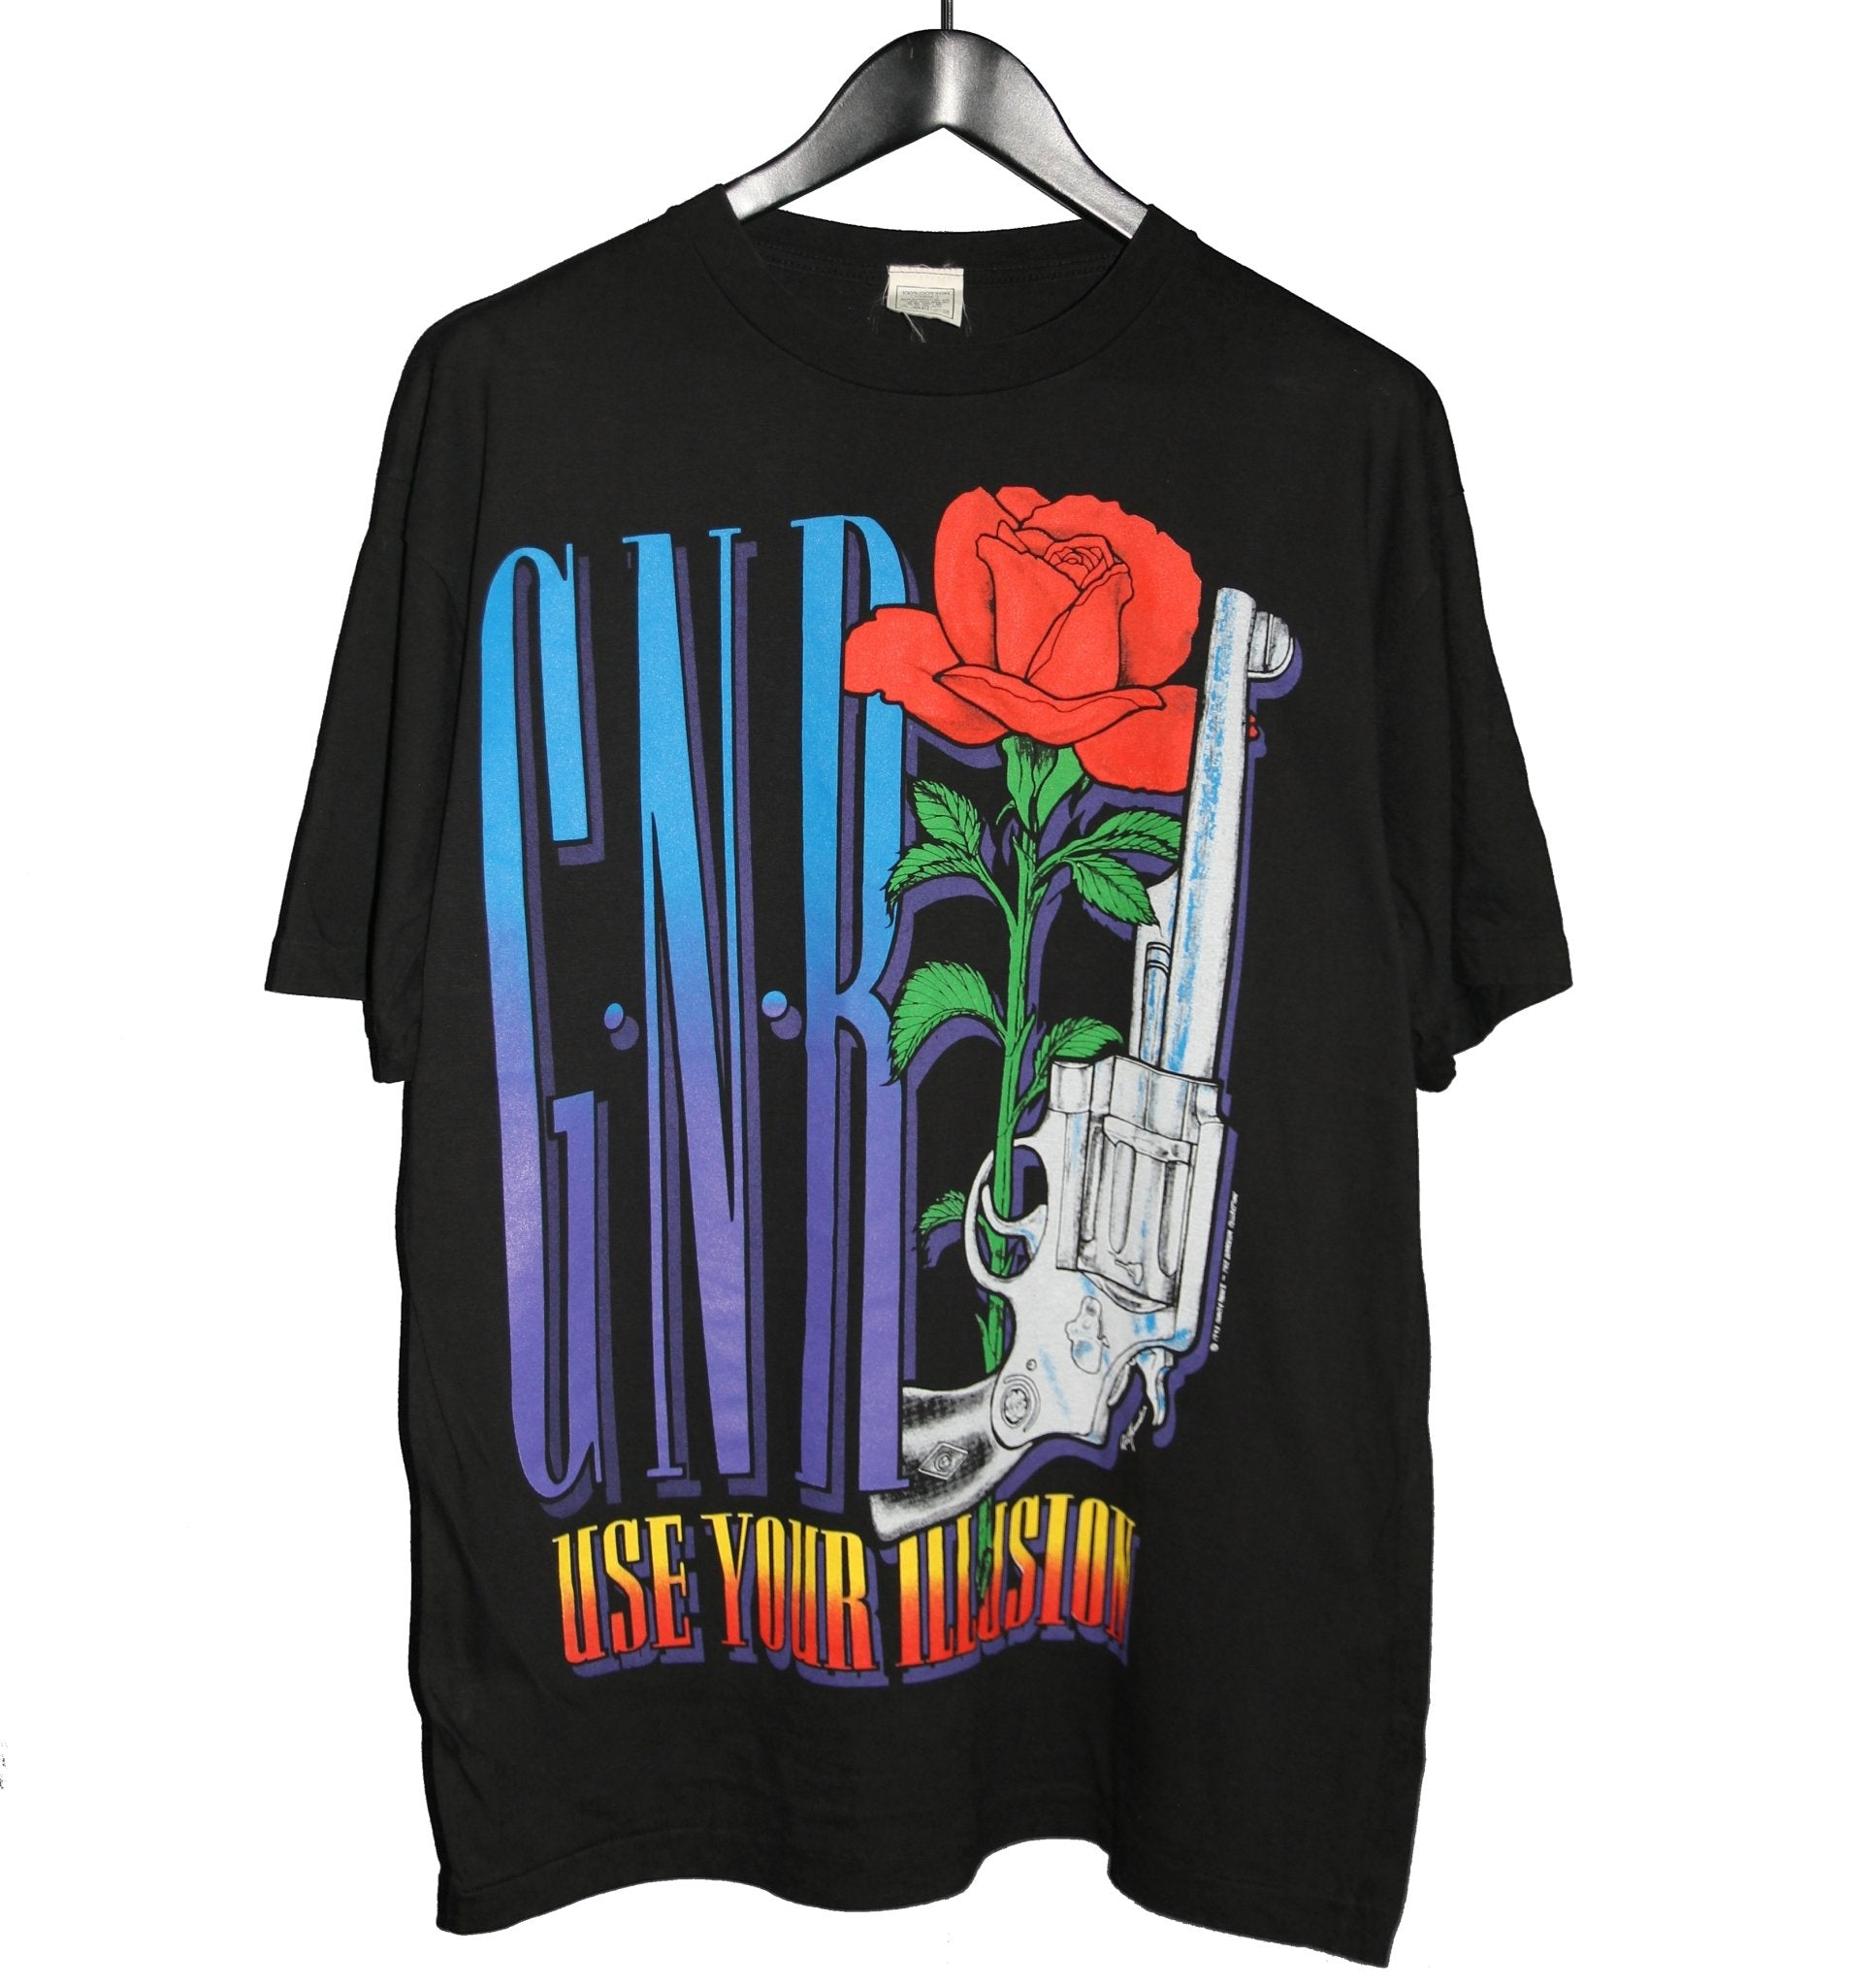 Guns N Roses 1993 Use Your Illusion Tour Shirt - Faded AU